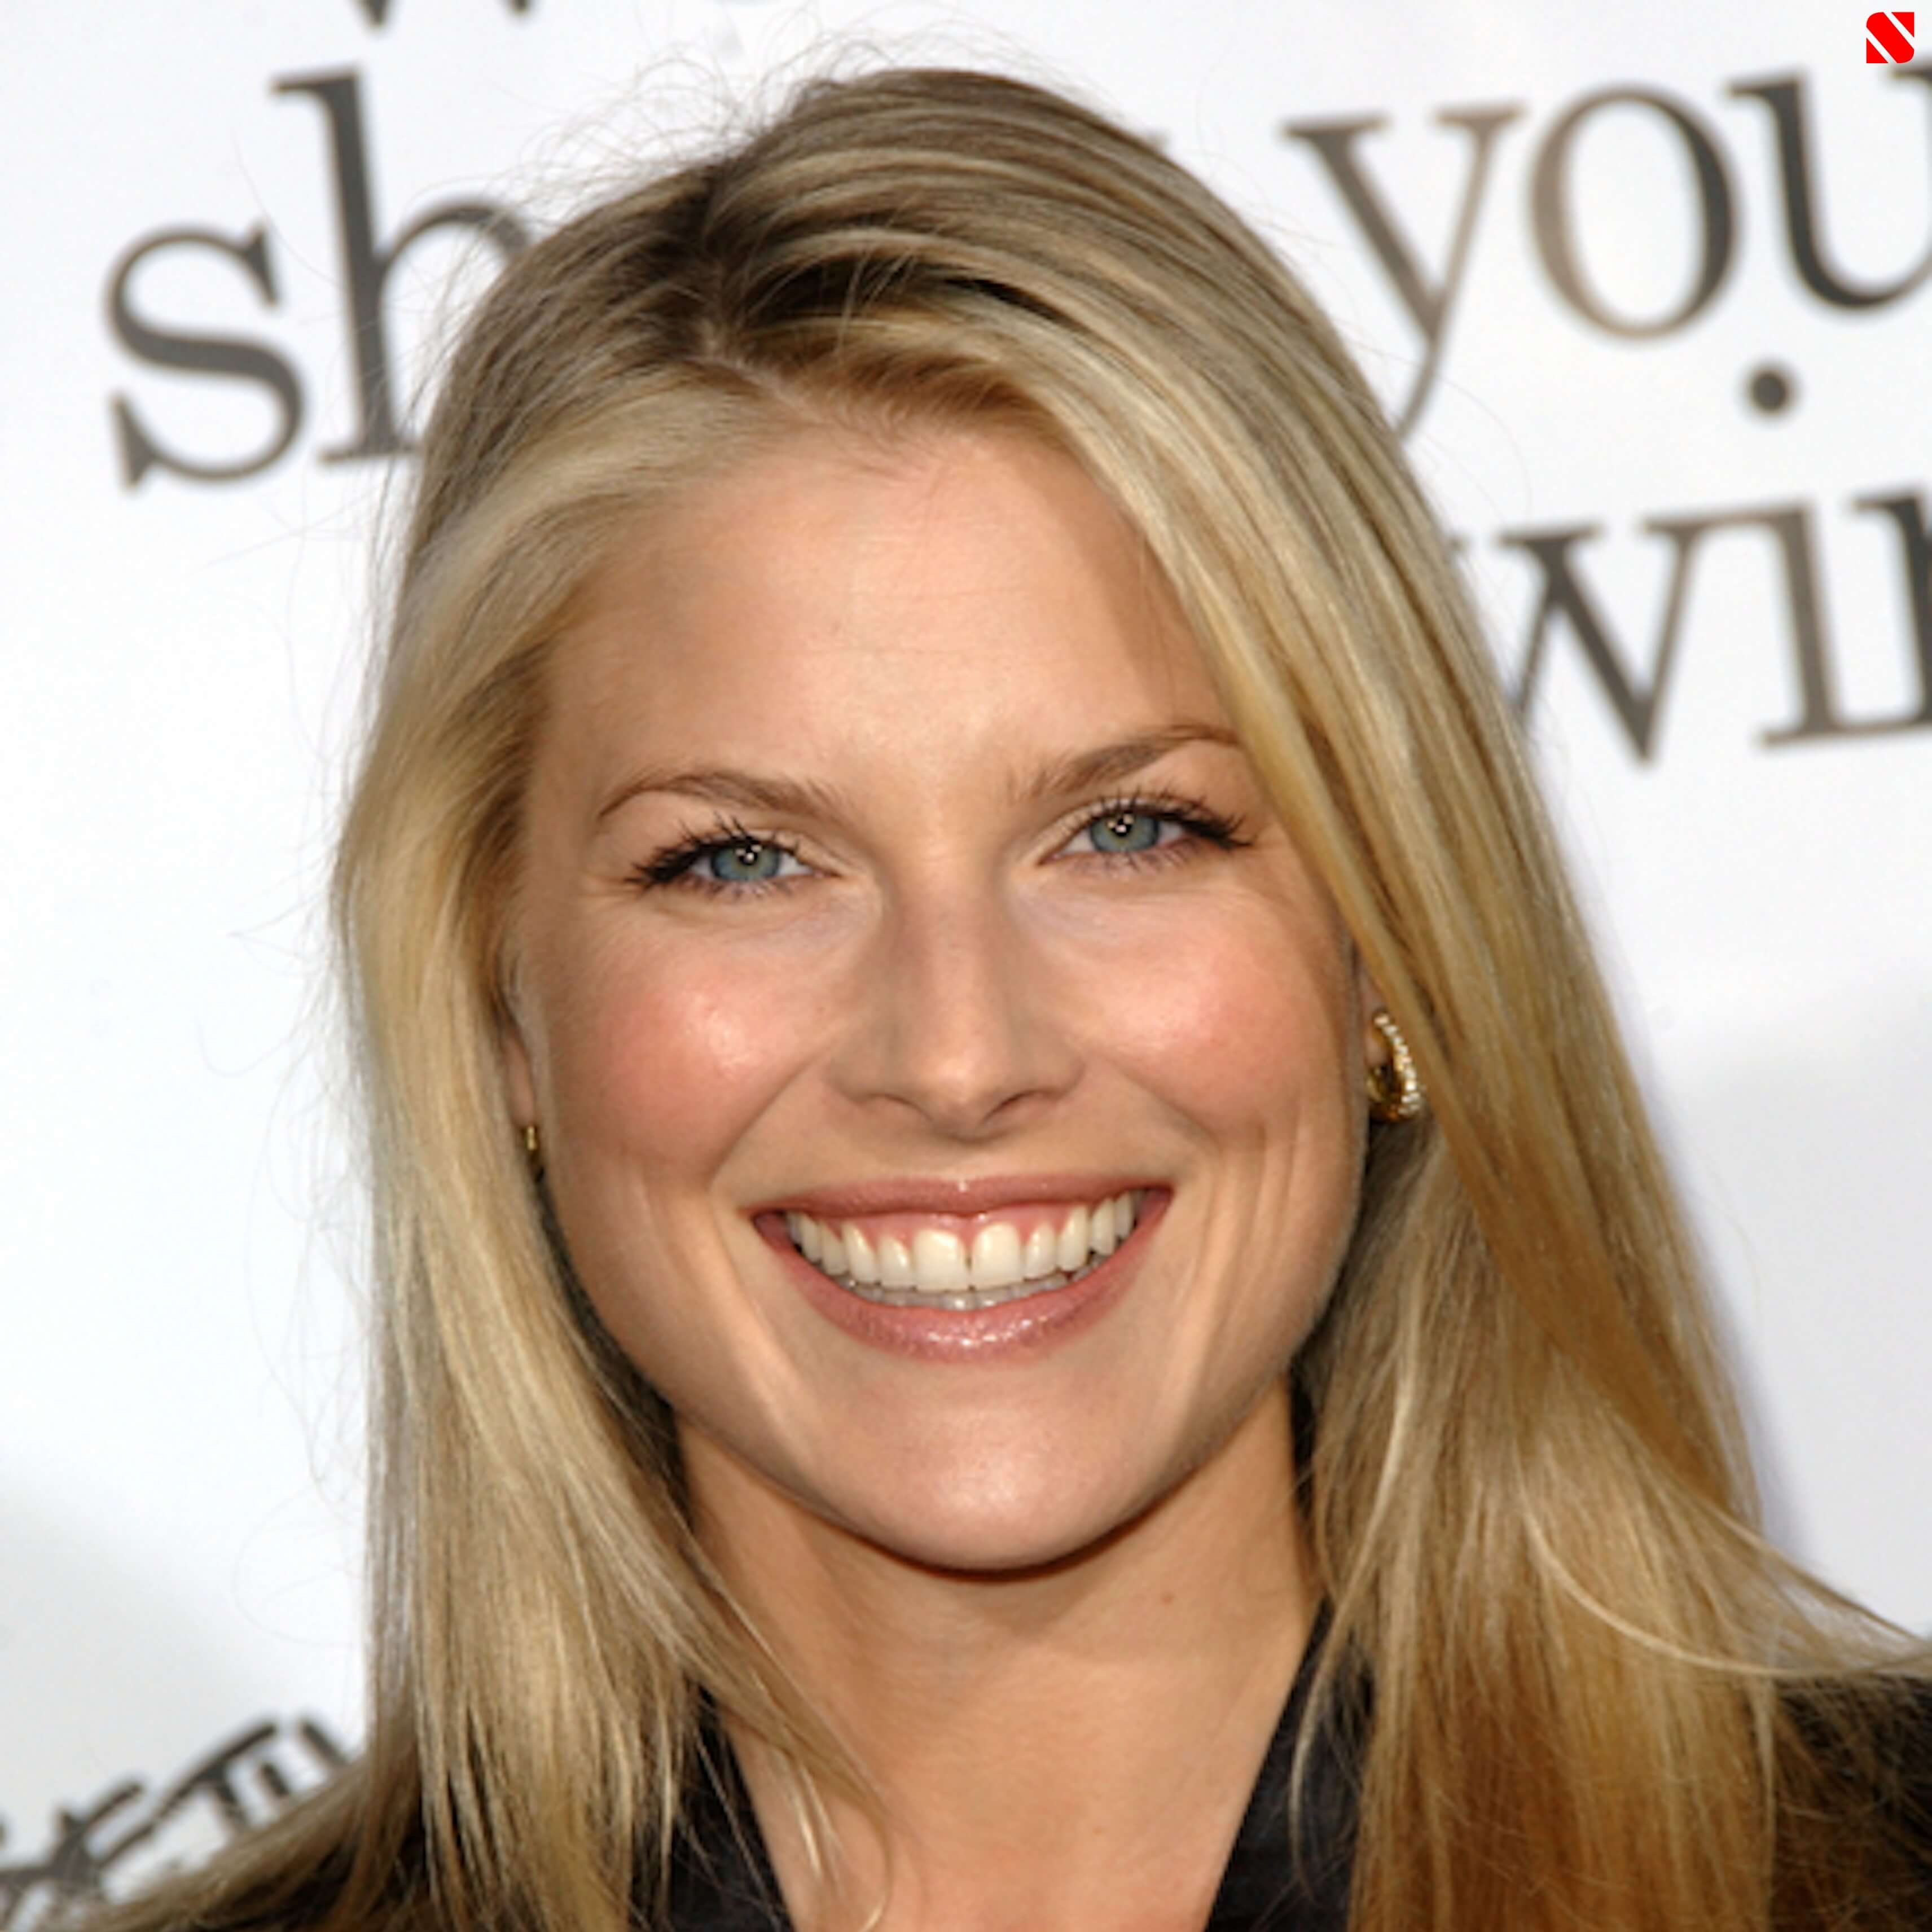 Fotos Ali Larter nudes (96 photo), Pussy, Leaked, Boobs, swimsuit 2017